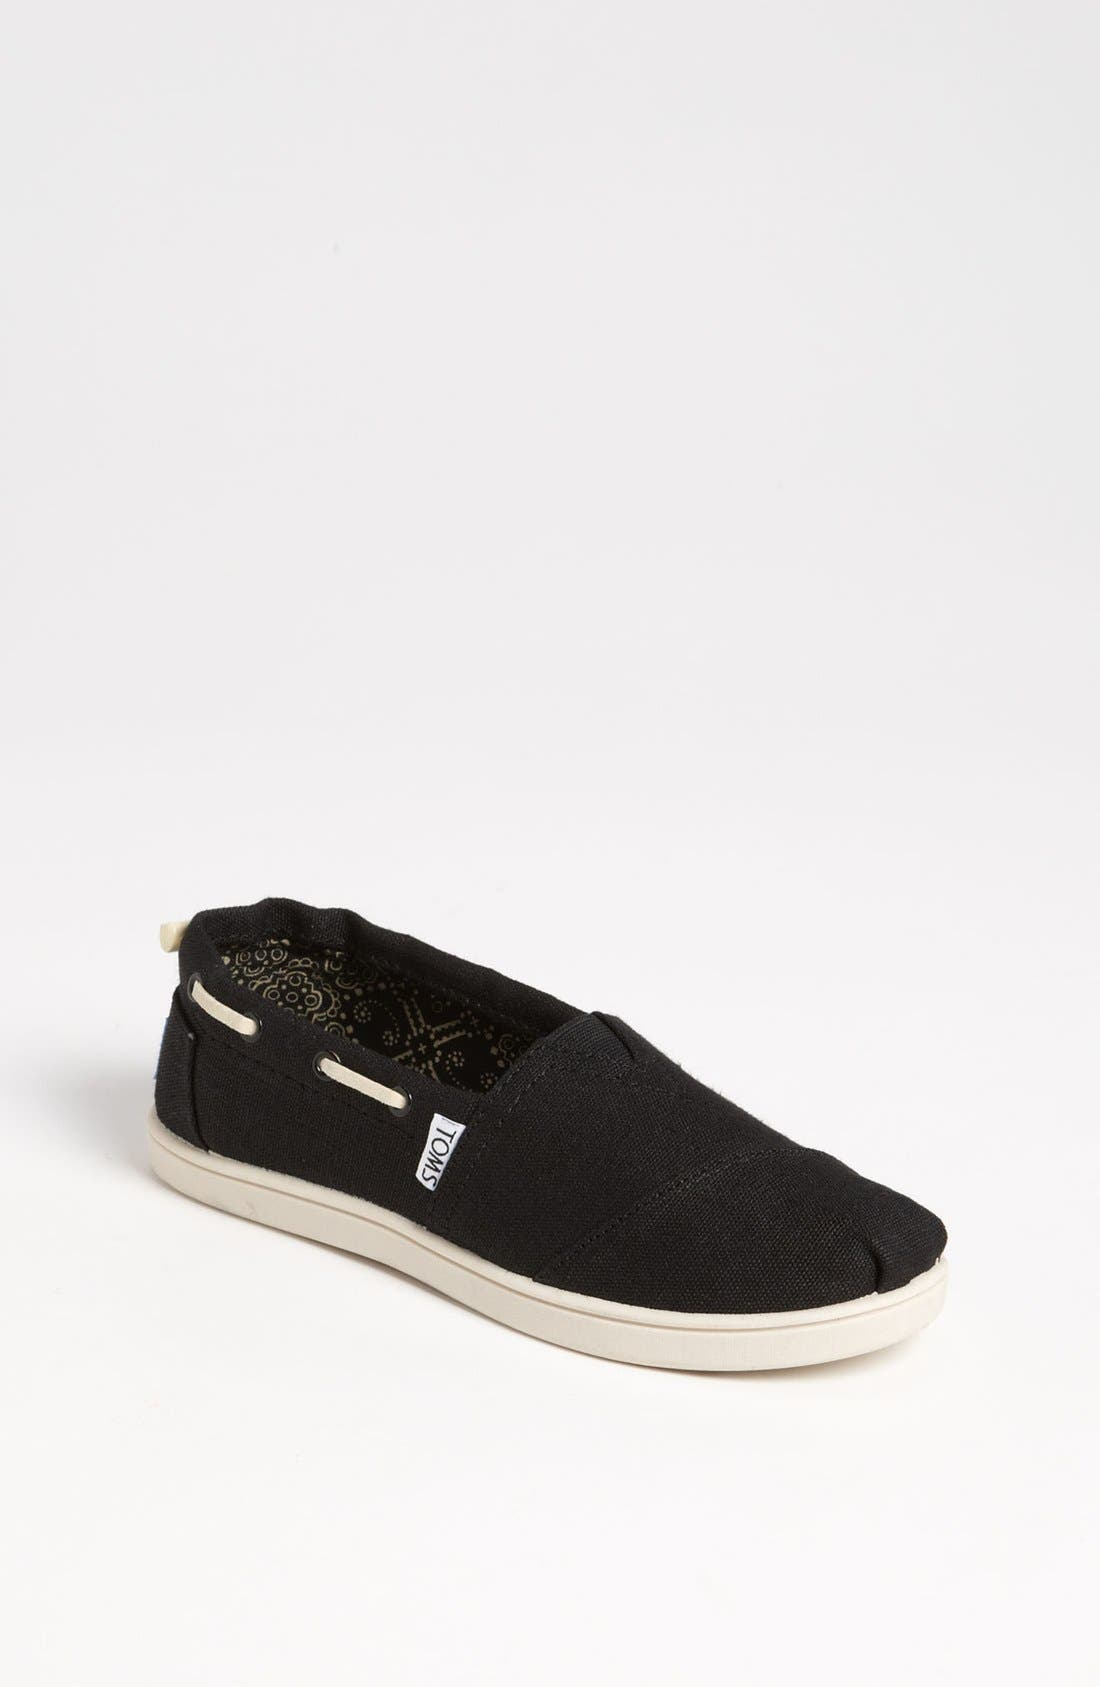 Main Image - TOMS 'Bimini - Youth' Slip-On (Toddler, Little Kid & Big Kid)